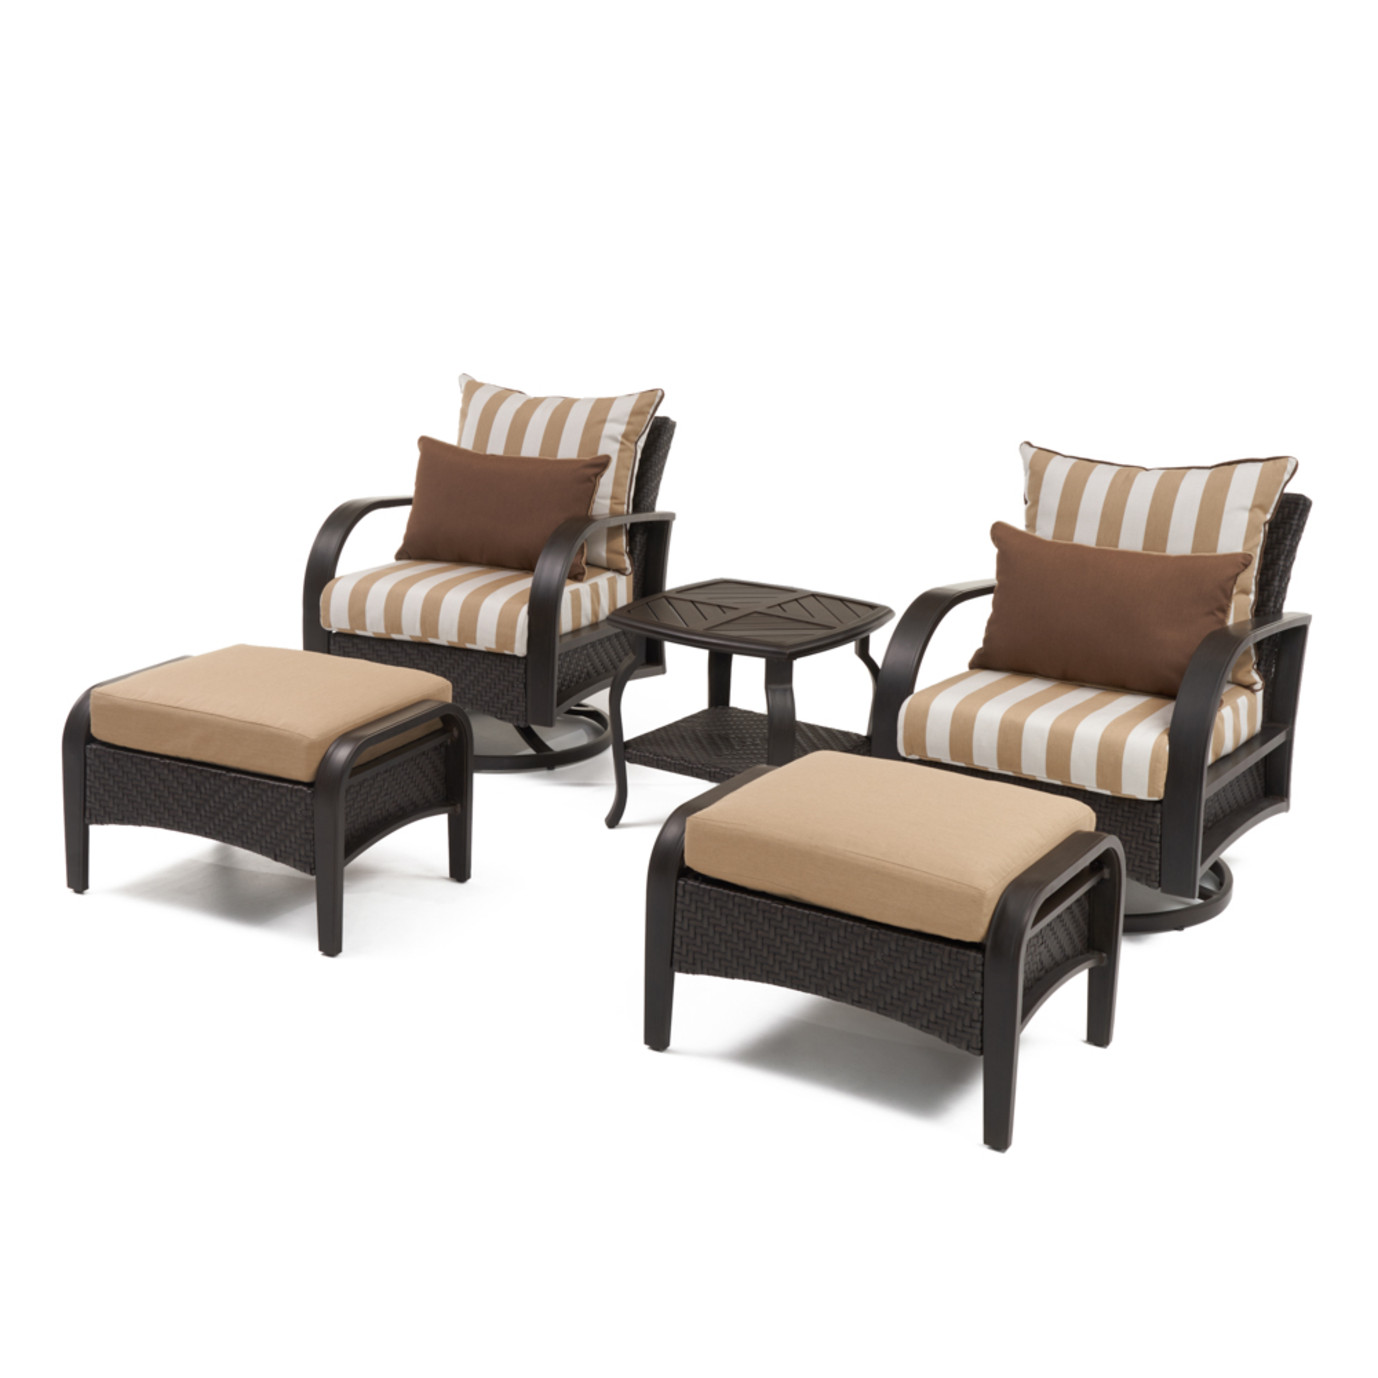 Barcelo™ 5pc Deluxe Motion Club & Ottoman Set - Maxim Beige